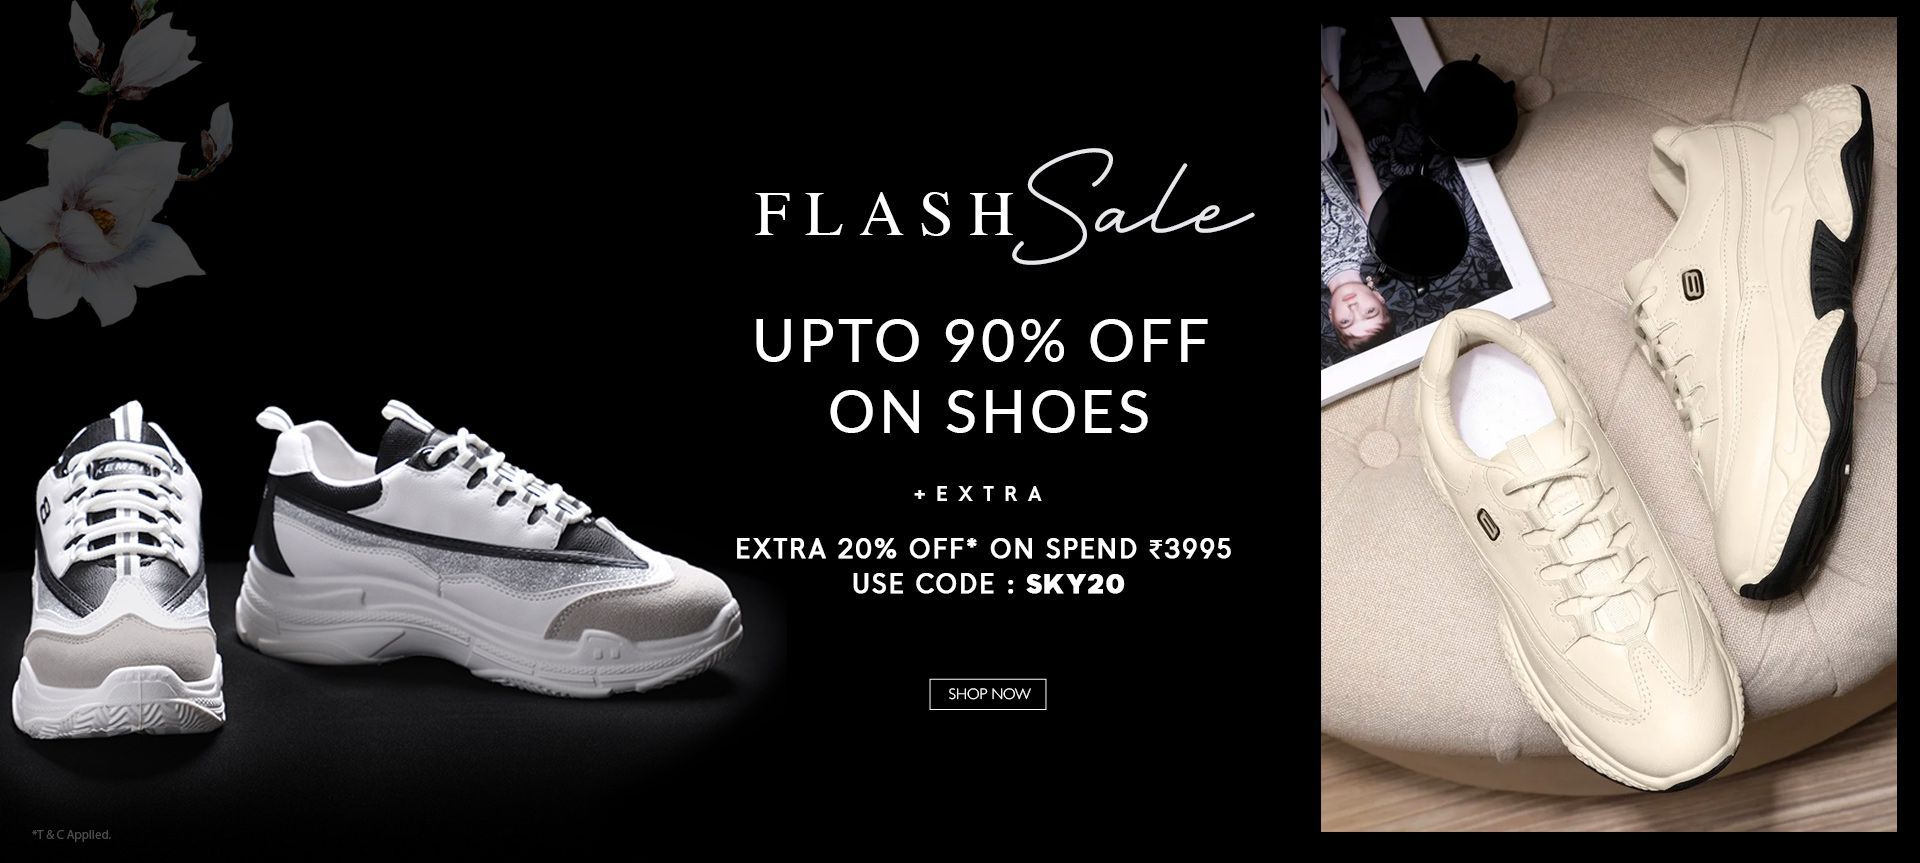 FLASH SALE UPTO 90% OFF ON SHOES